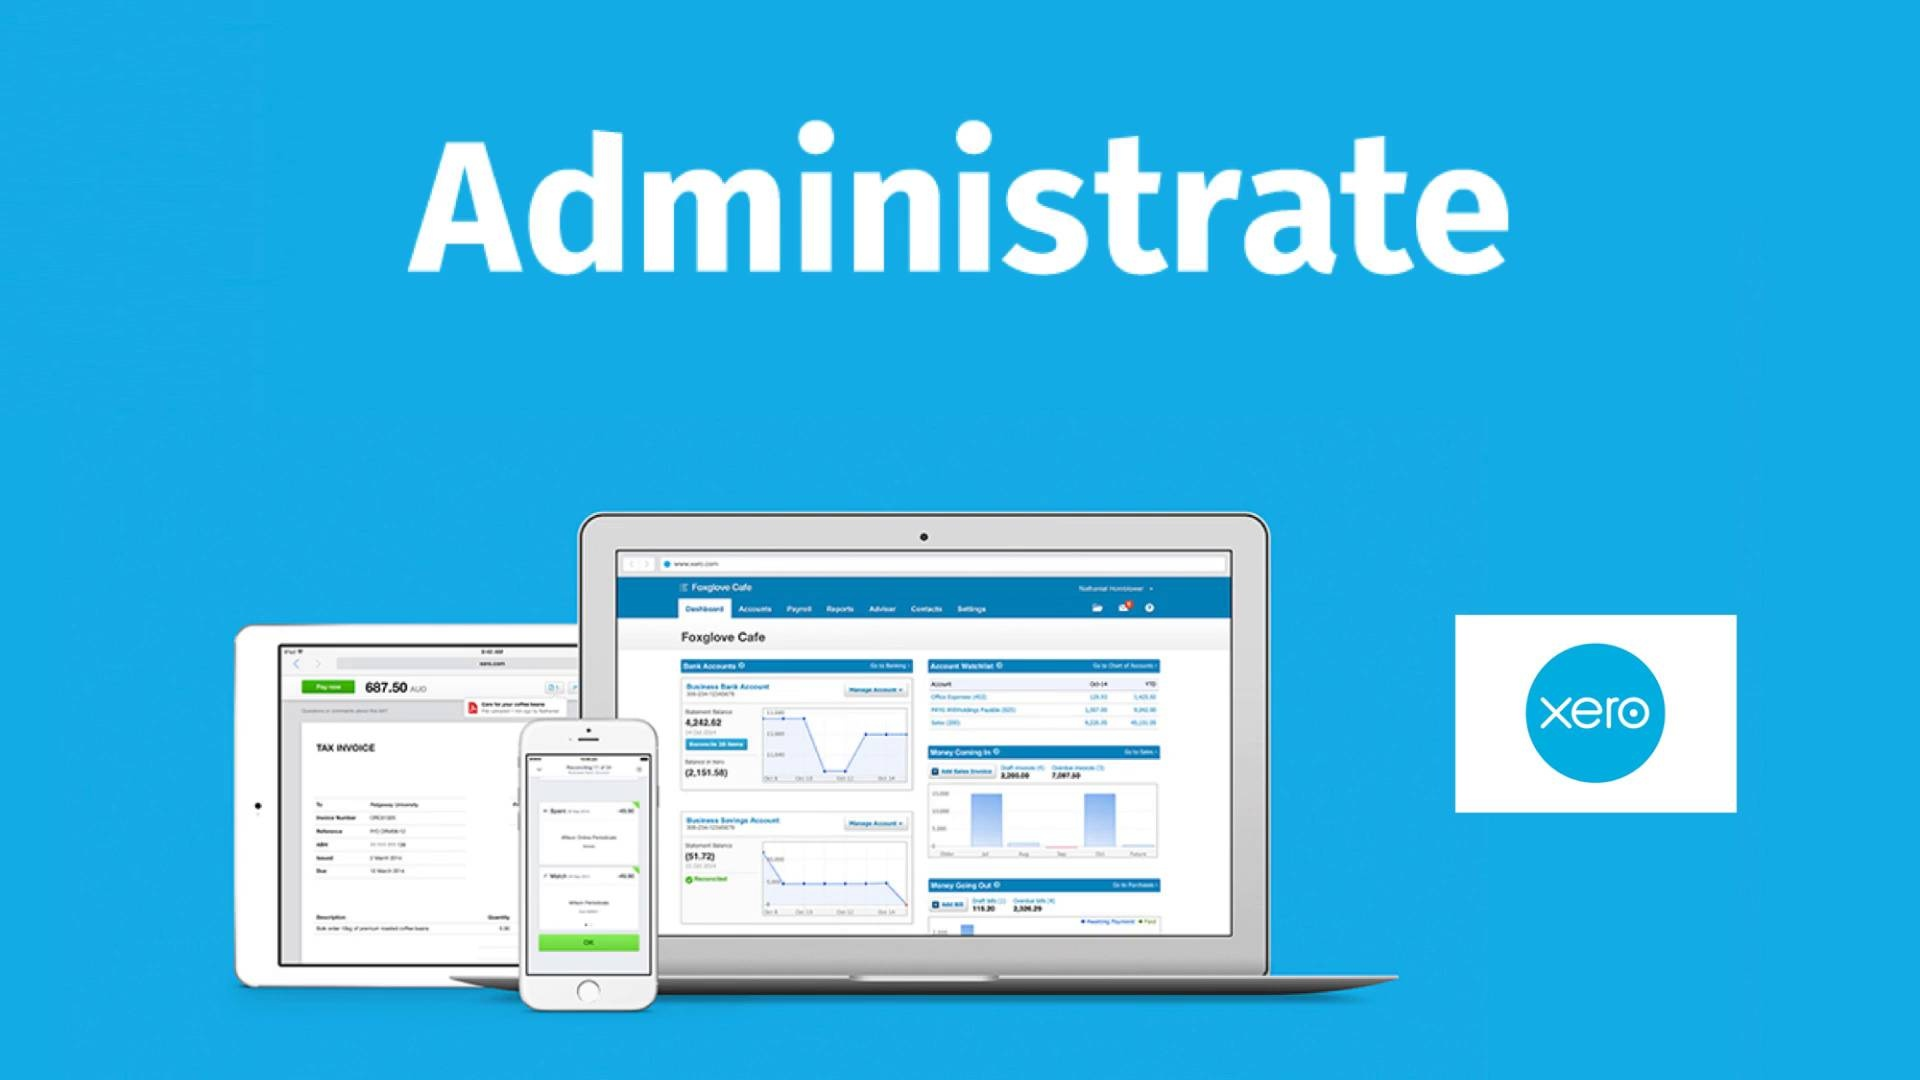 How to Integrate Xero with Administrate